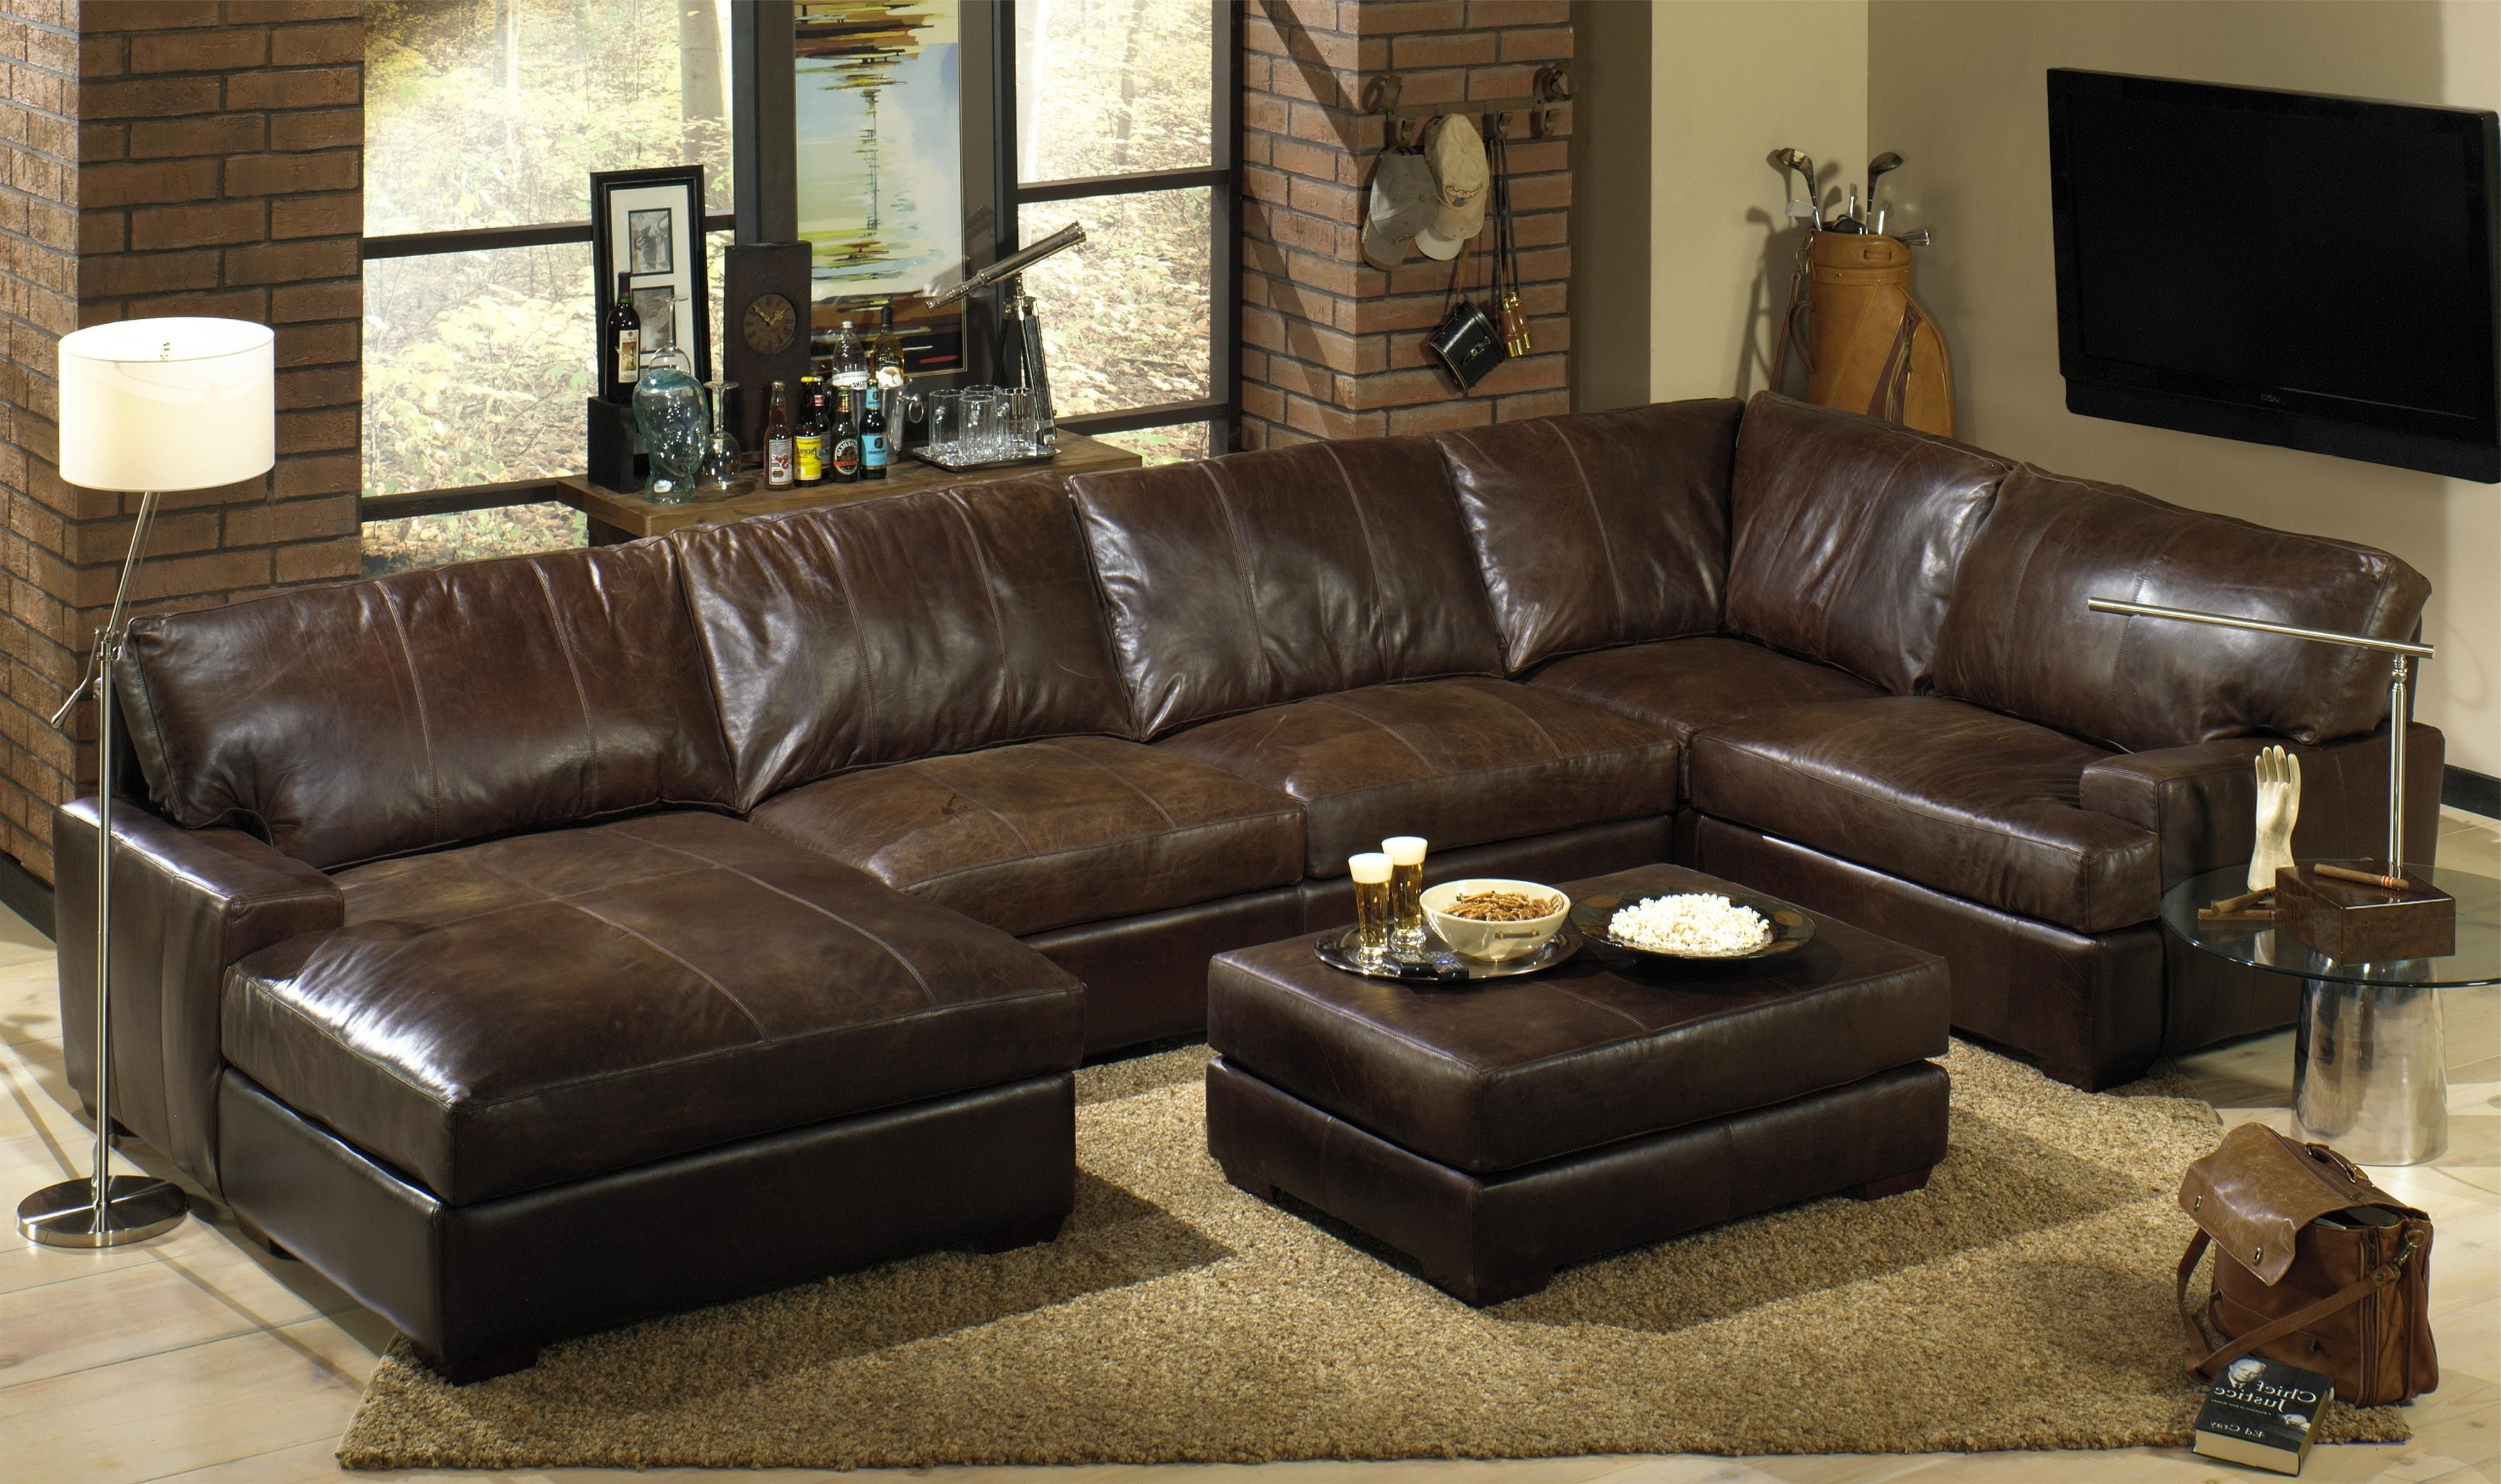 Latest Comfortable Sectional Couches For Versatile Home Furniture Ideas Throughout Sectional Sofas With Recliners Leather (View 10 of 15)